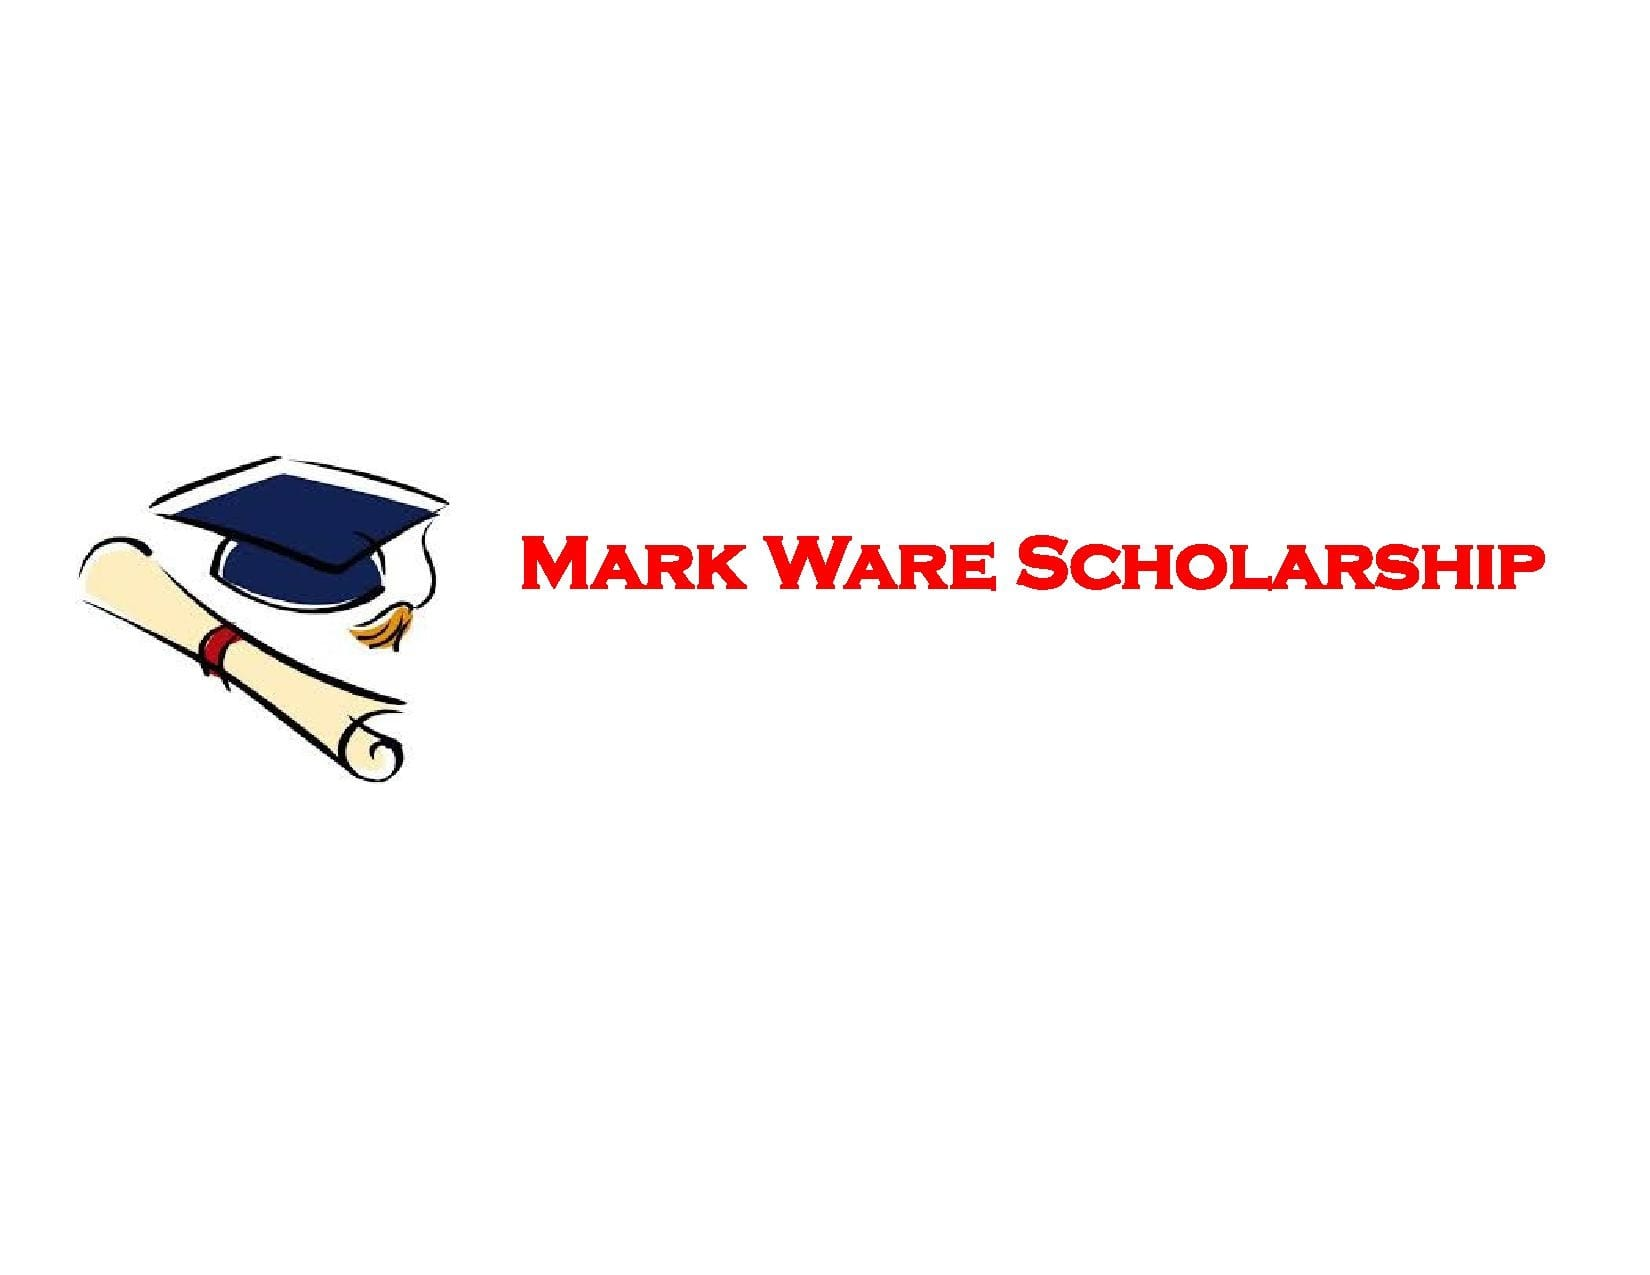 the best scholarships in west virginia college rank mark ware construction education scholarship